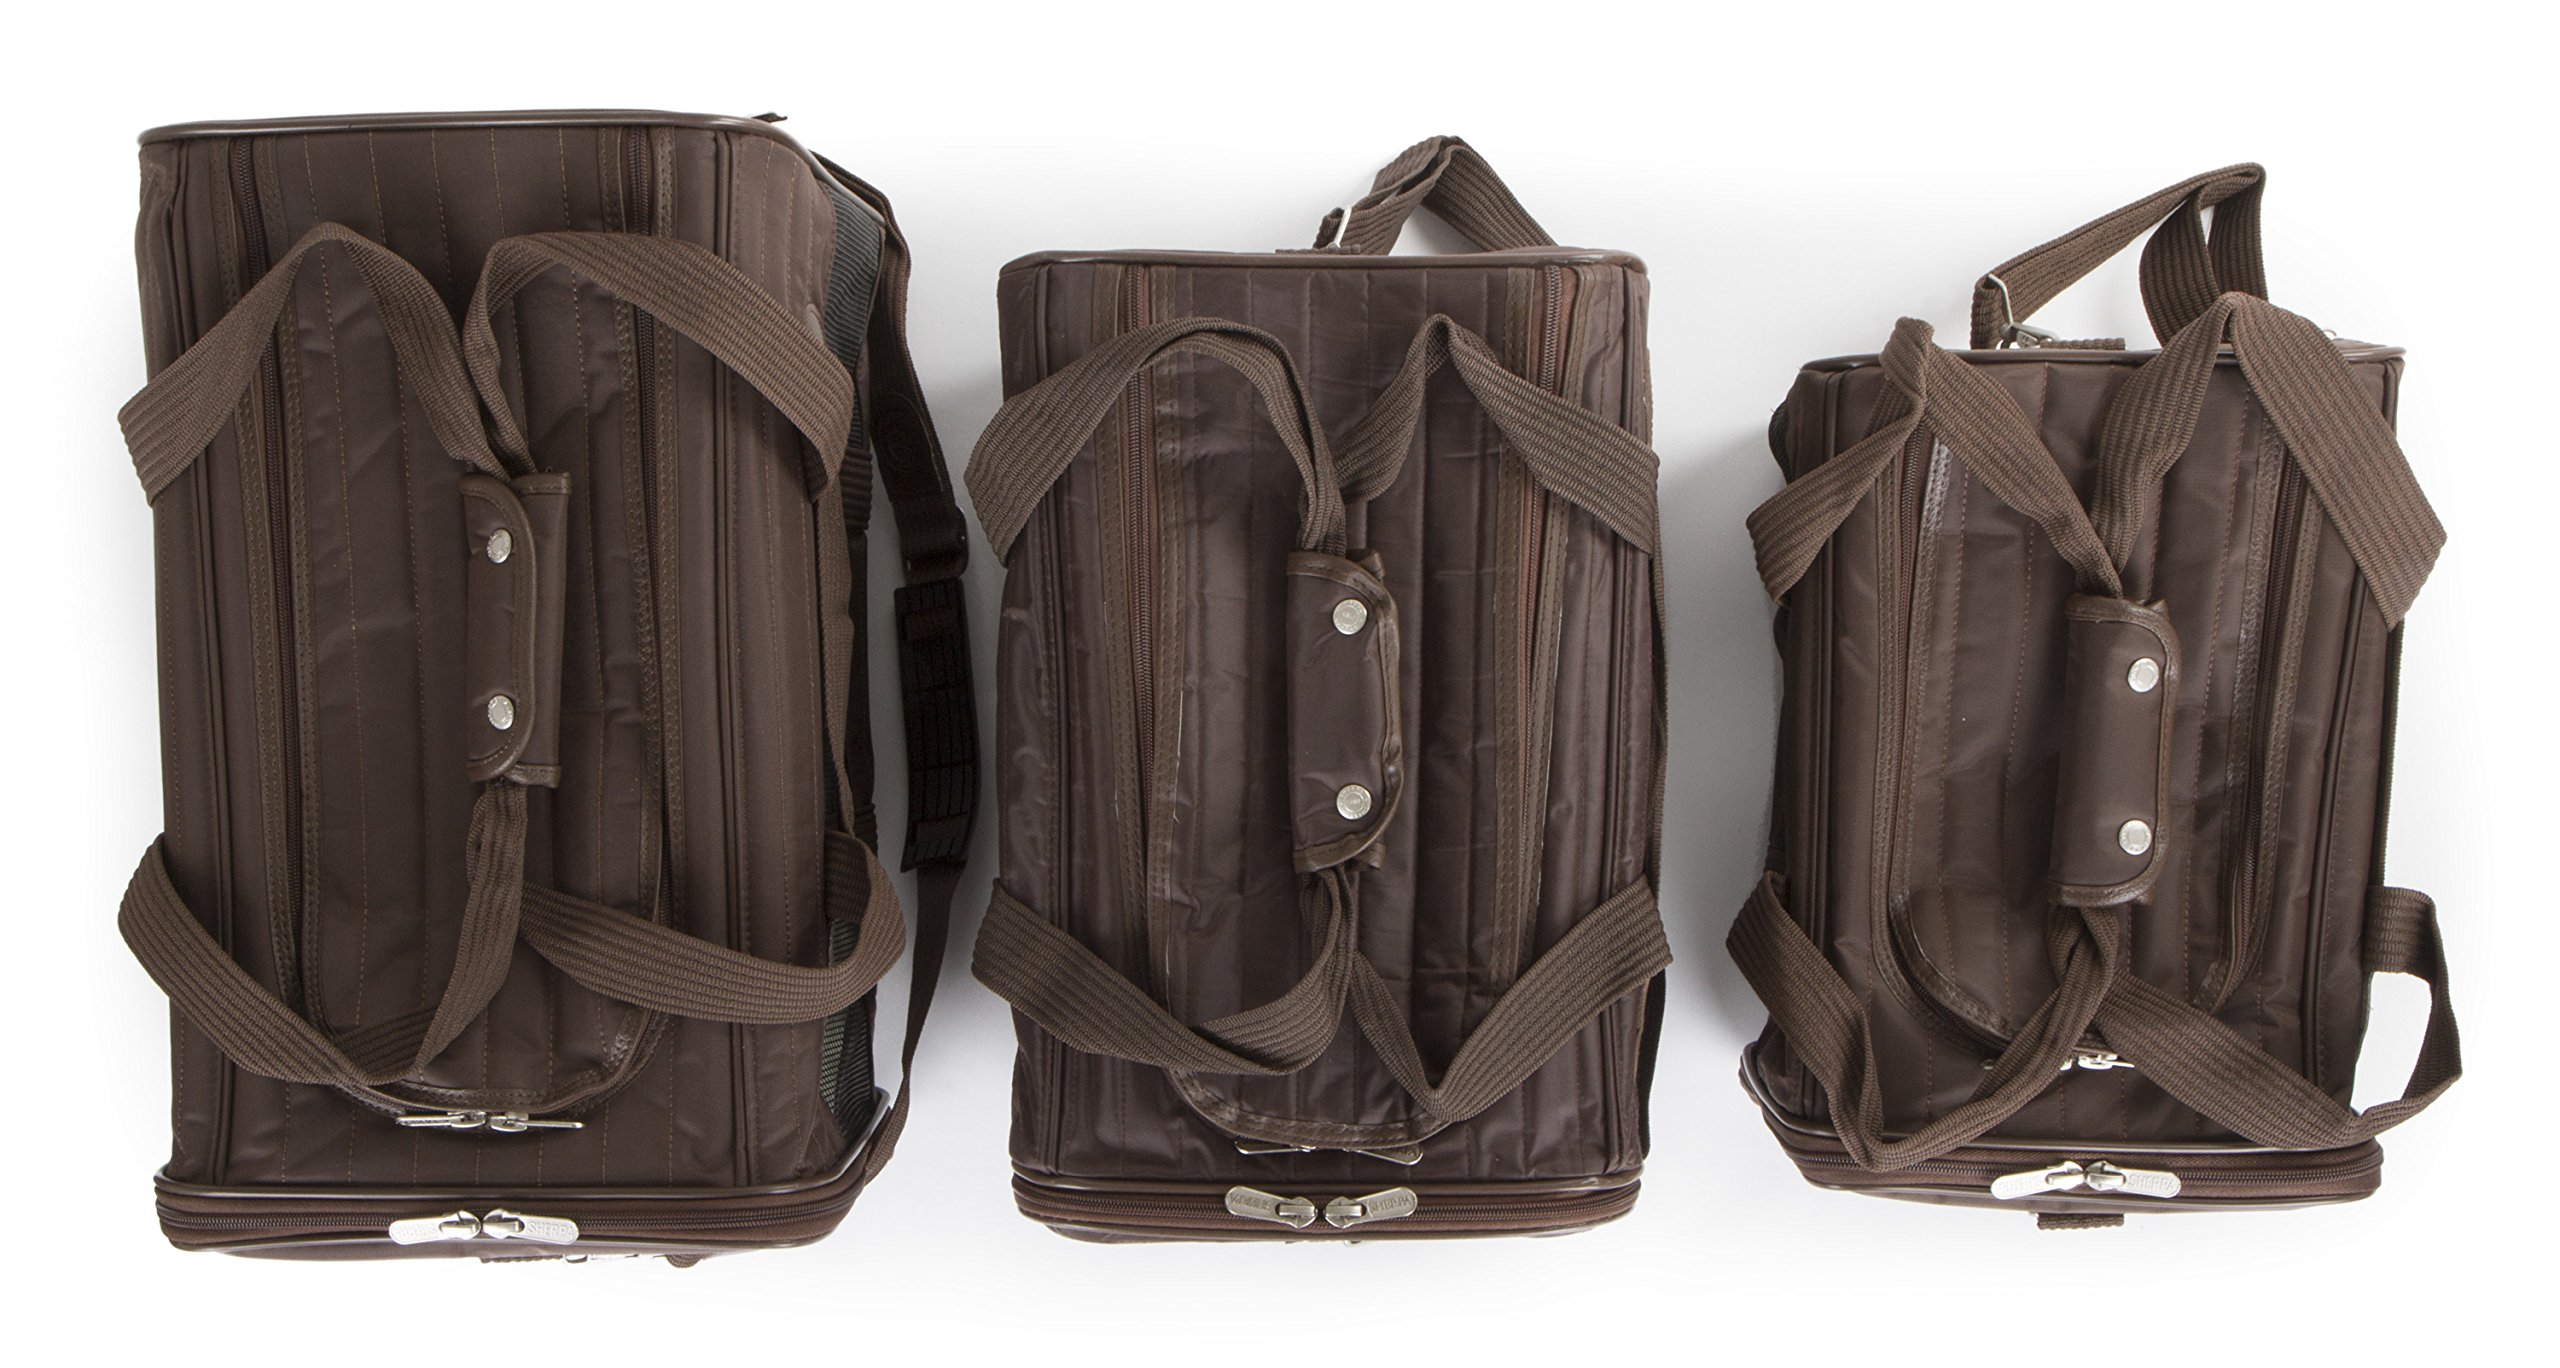 Sherpa Travel Original Deluxe Airline Approved Pet Carrier Small, Brown by Sherpa (Image #9)